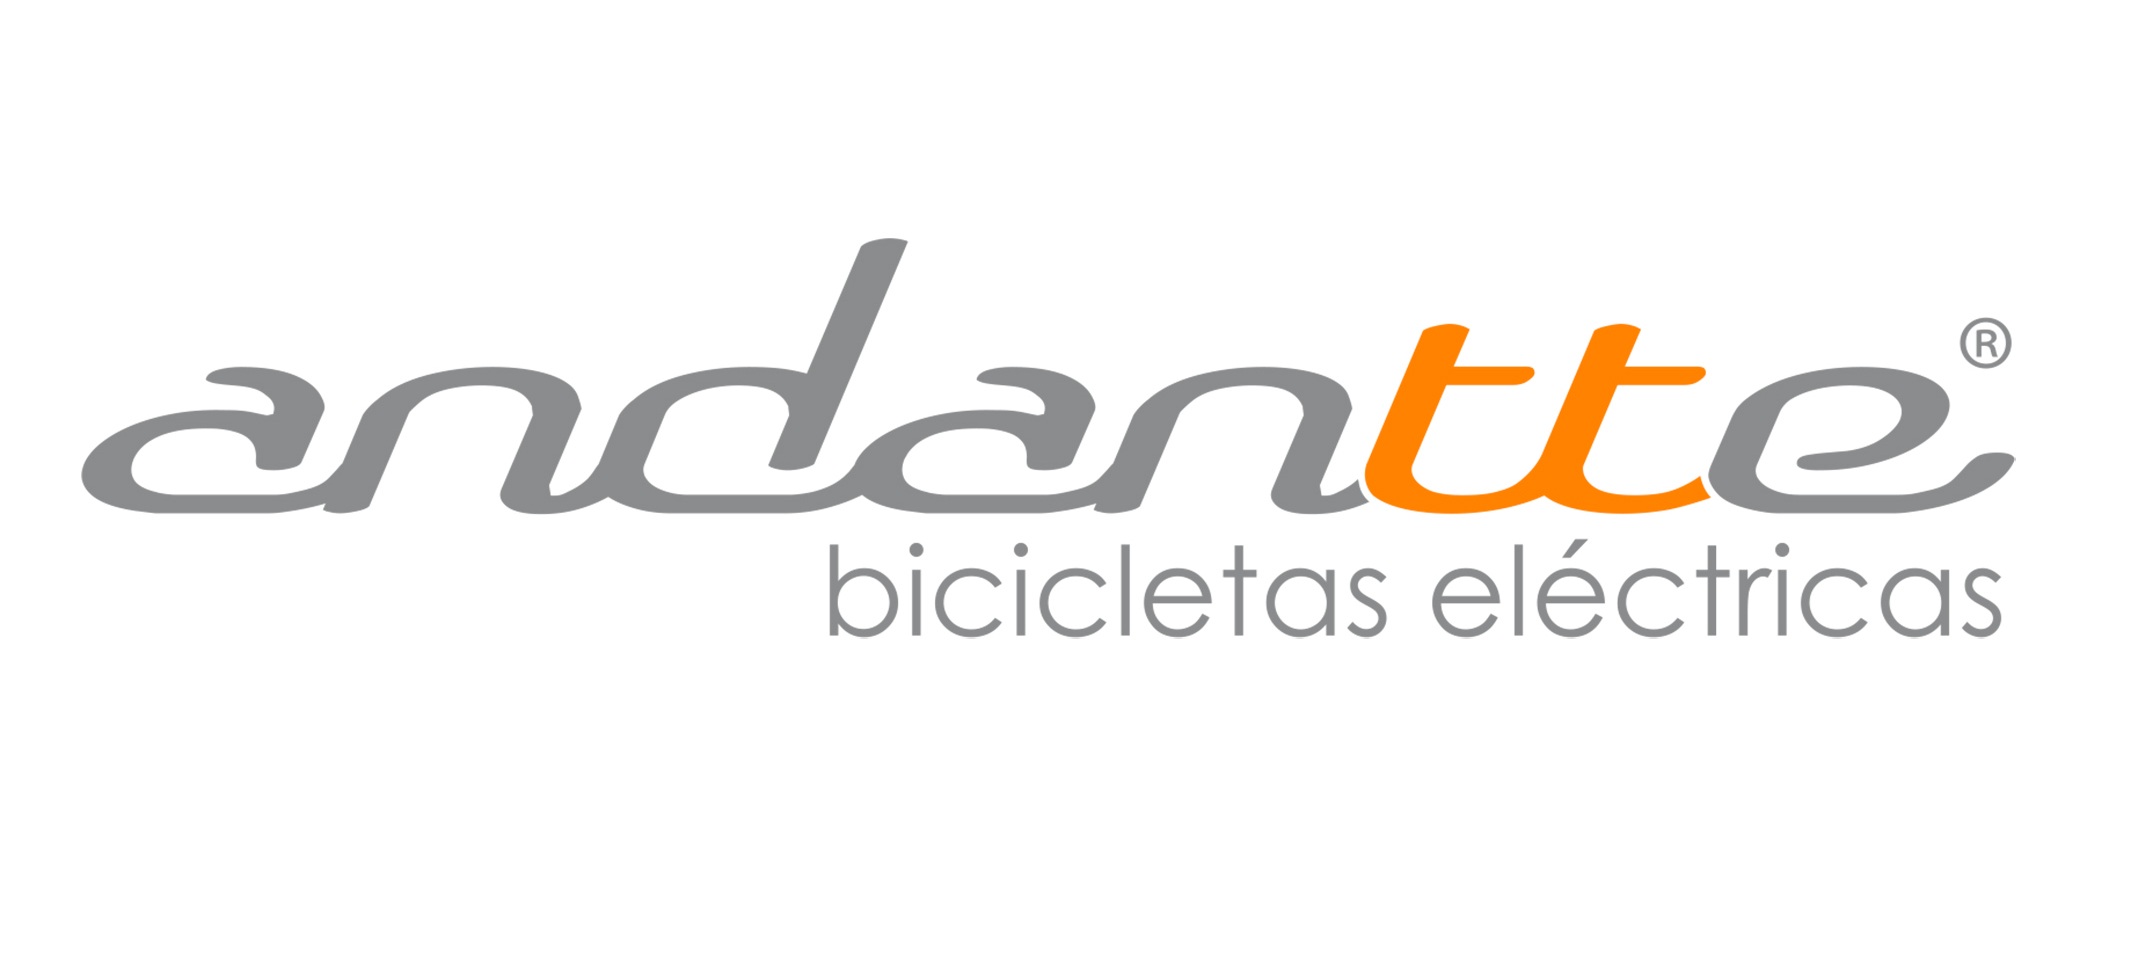 Special prices on electric bikes